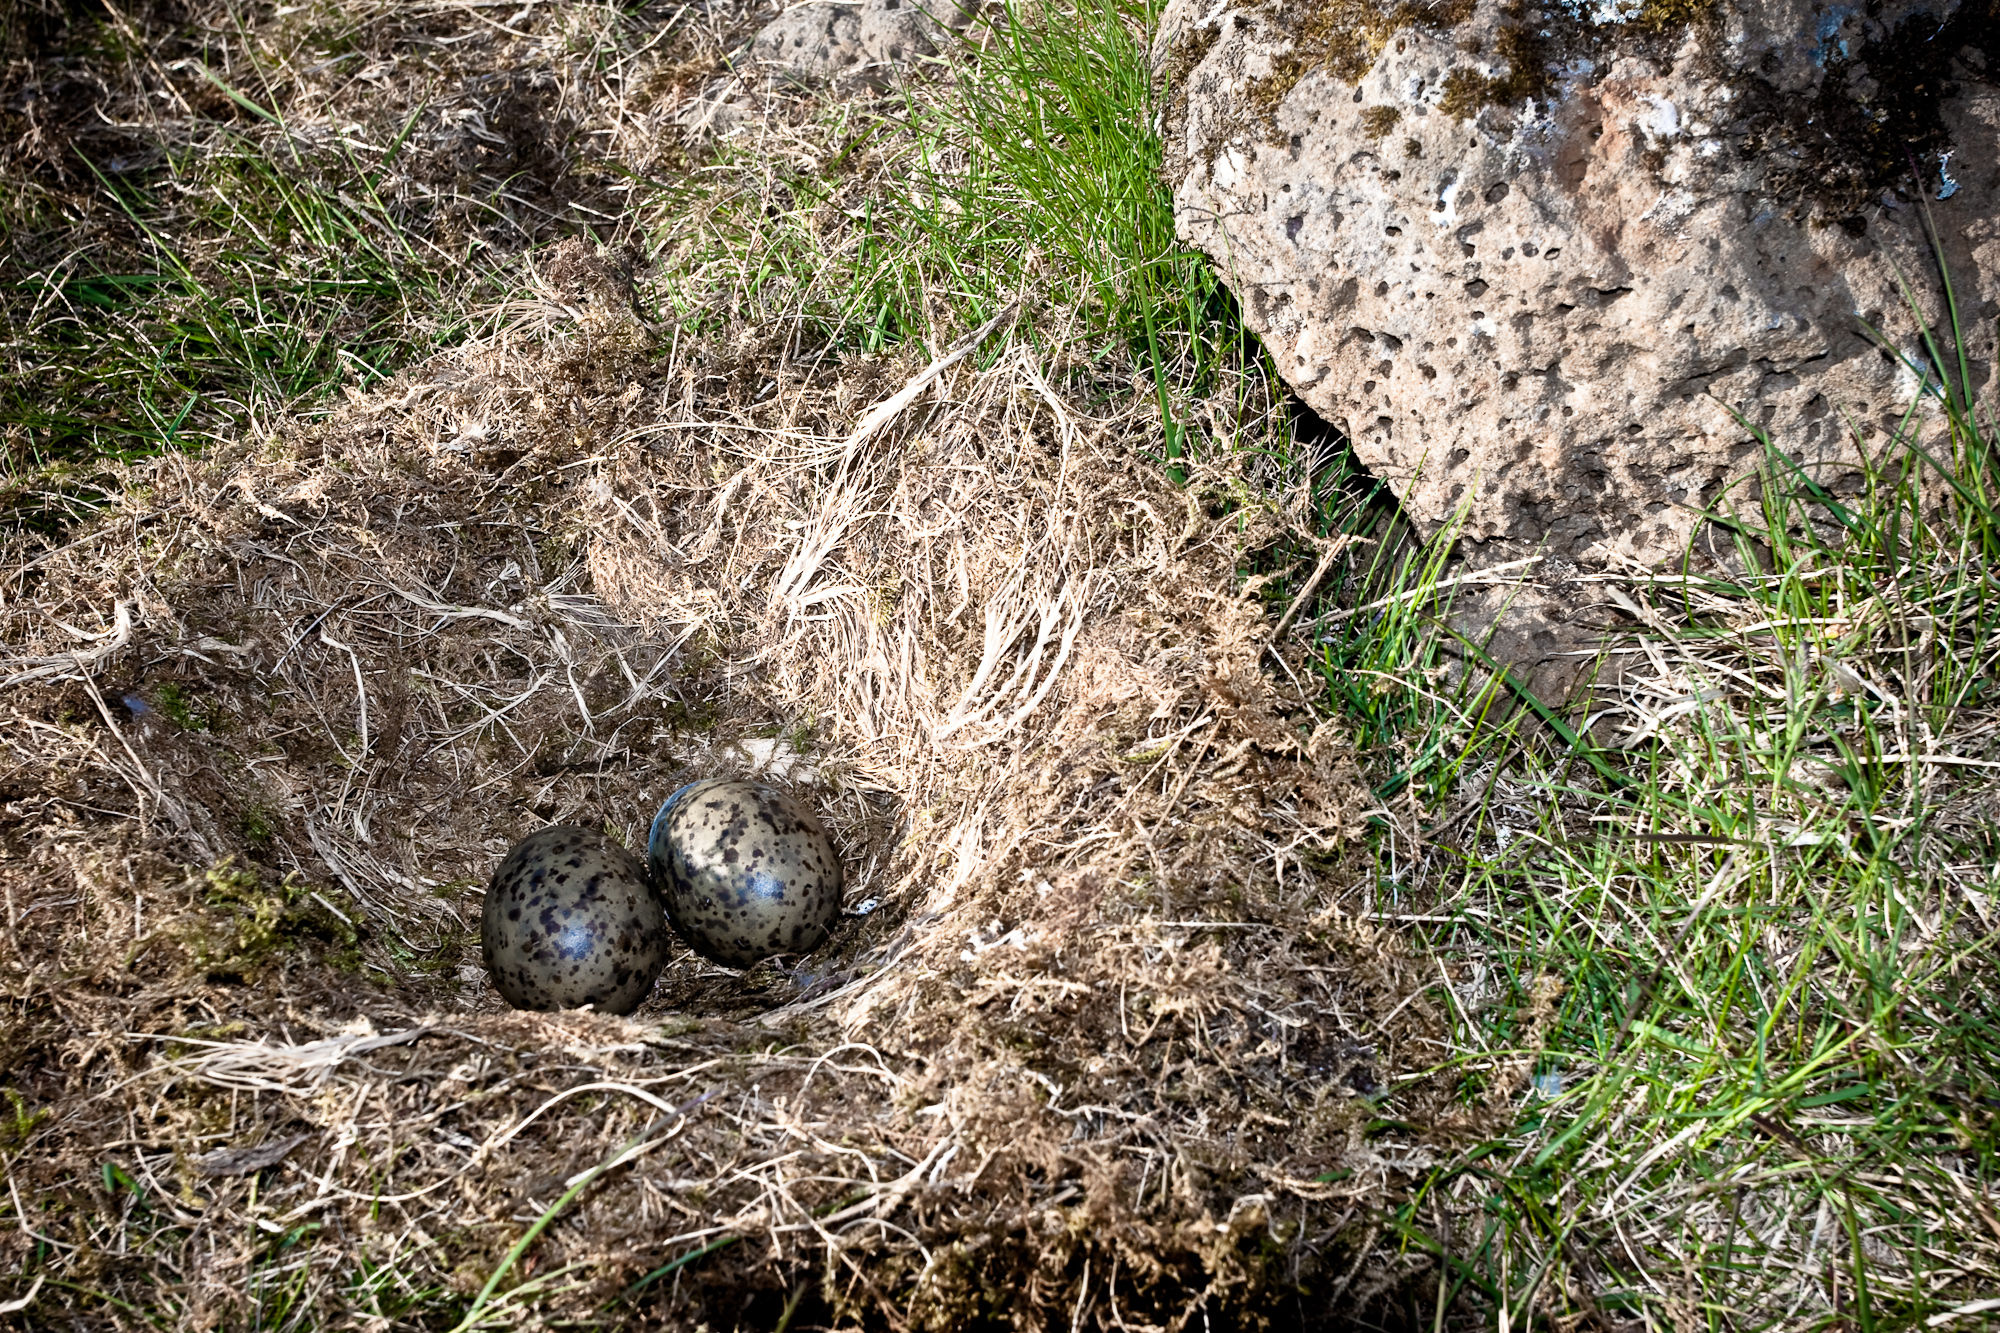 Nest with eggs, Nature, Nest, Seagul, Shell, HQ Photo